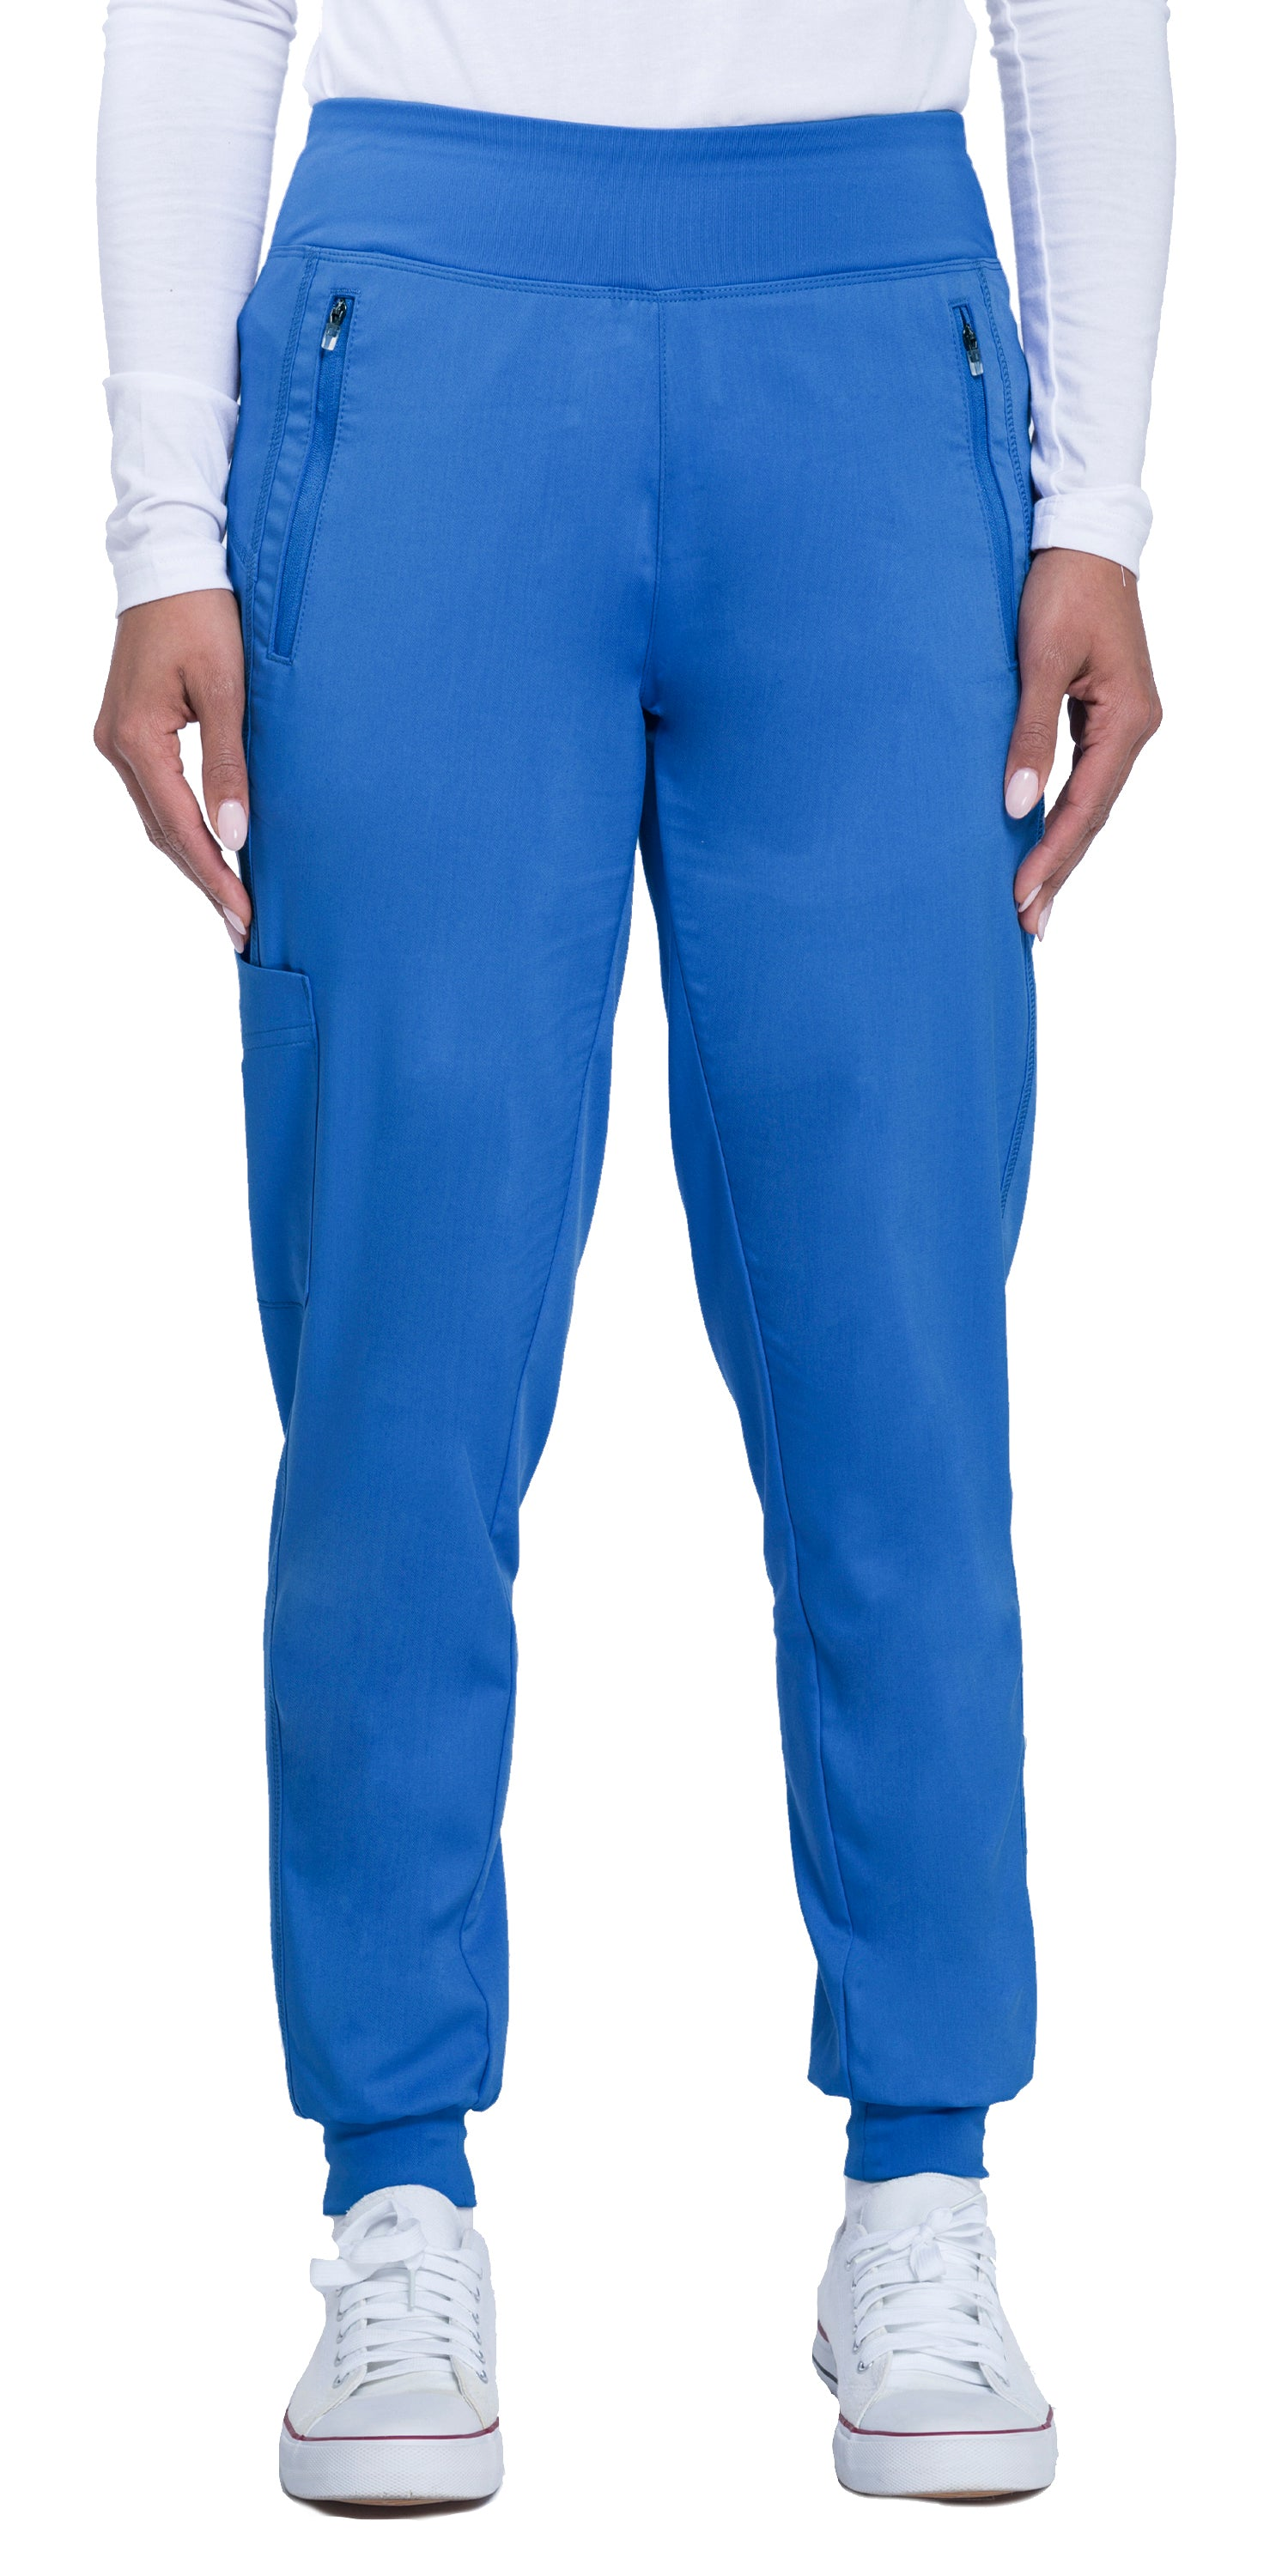 Healing Hands Purple Label YOGA 9233 Jogger Cargo Scrub Pant